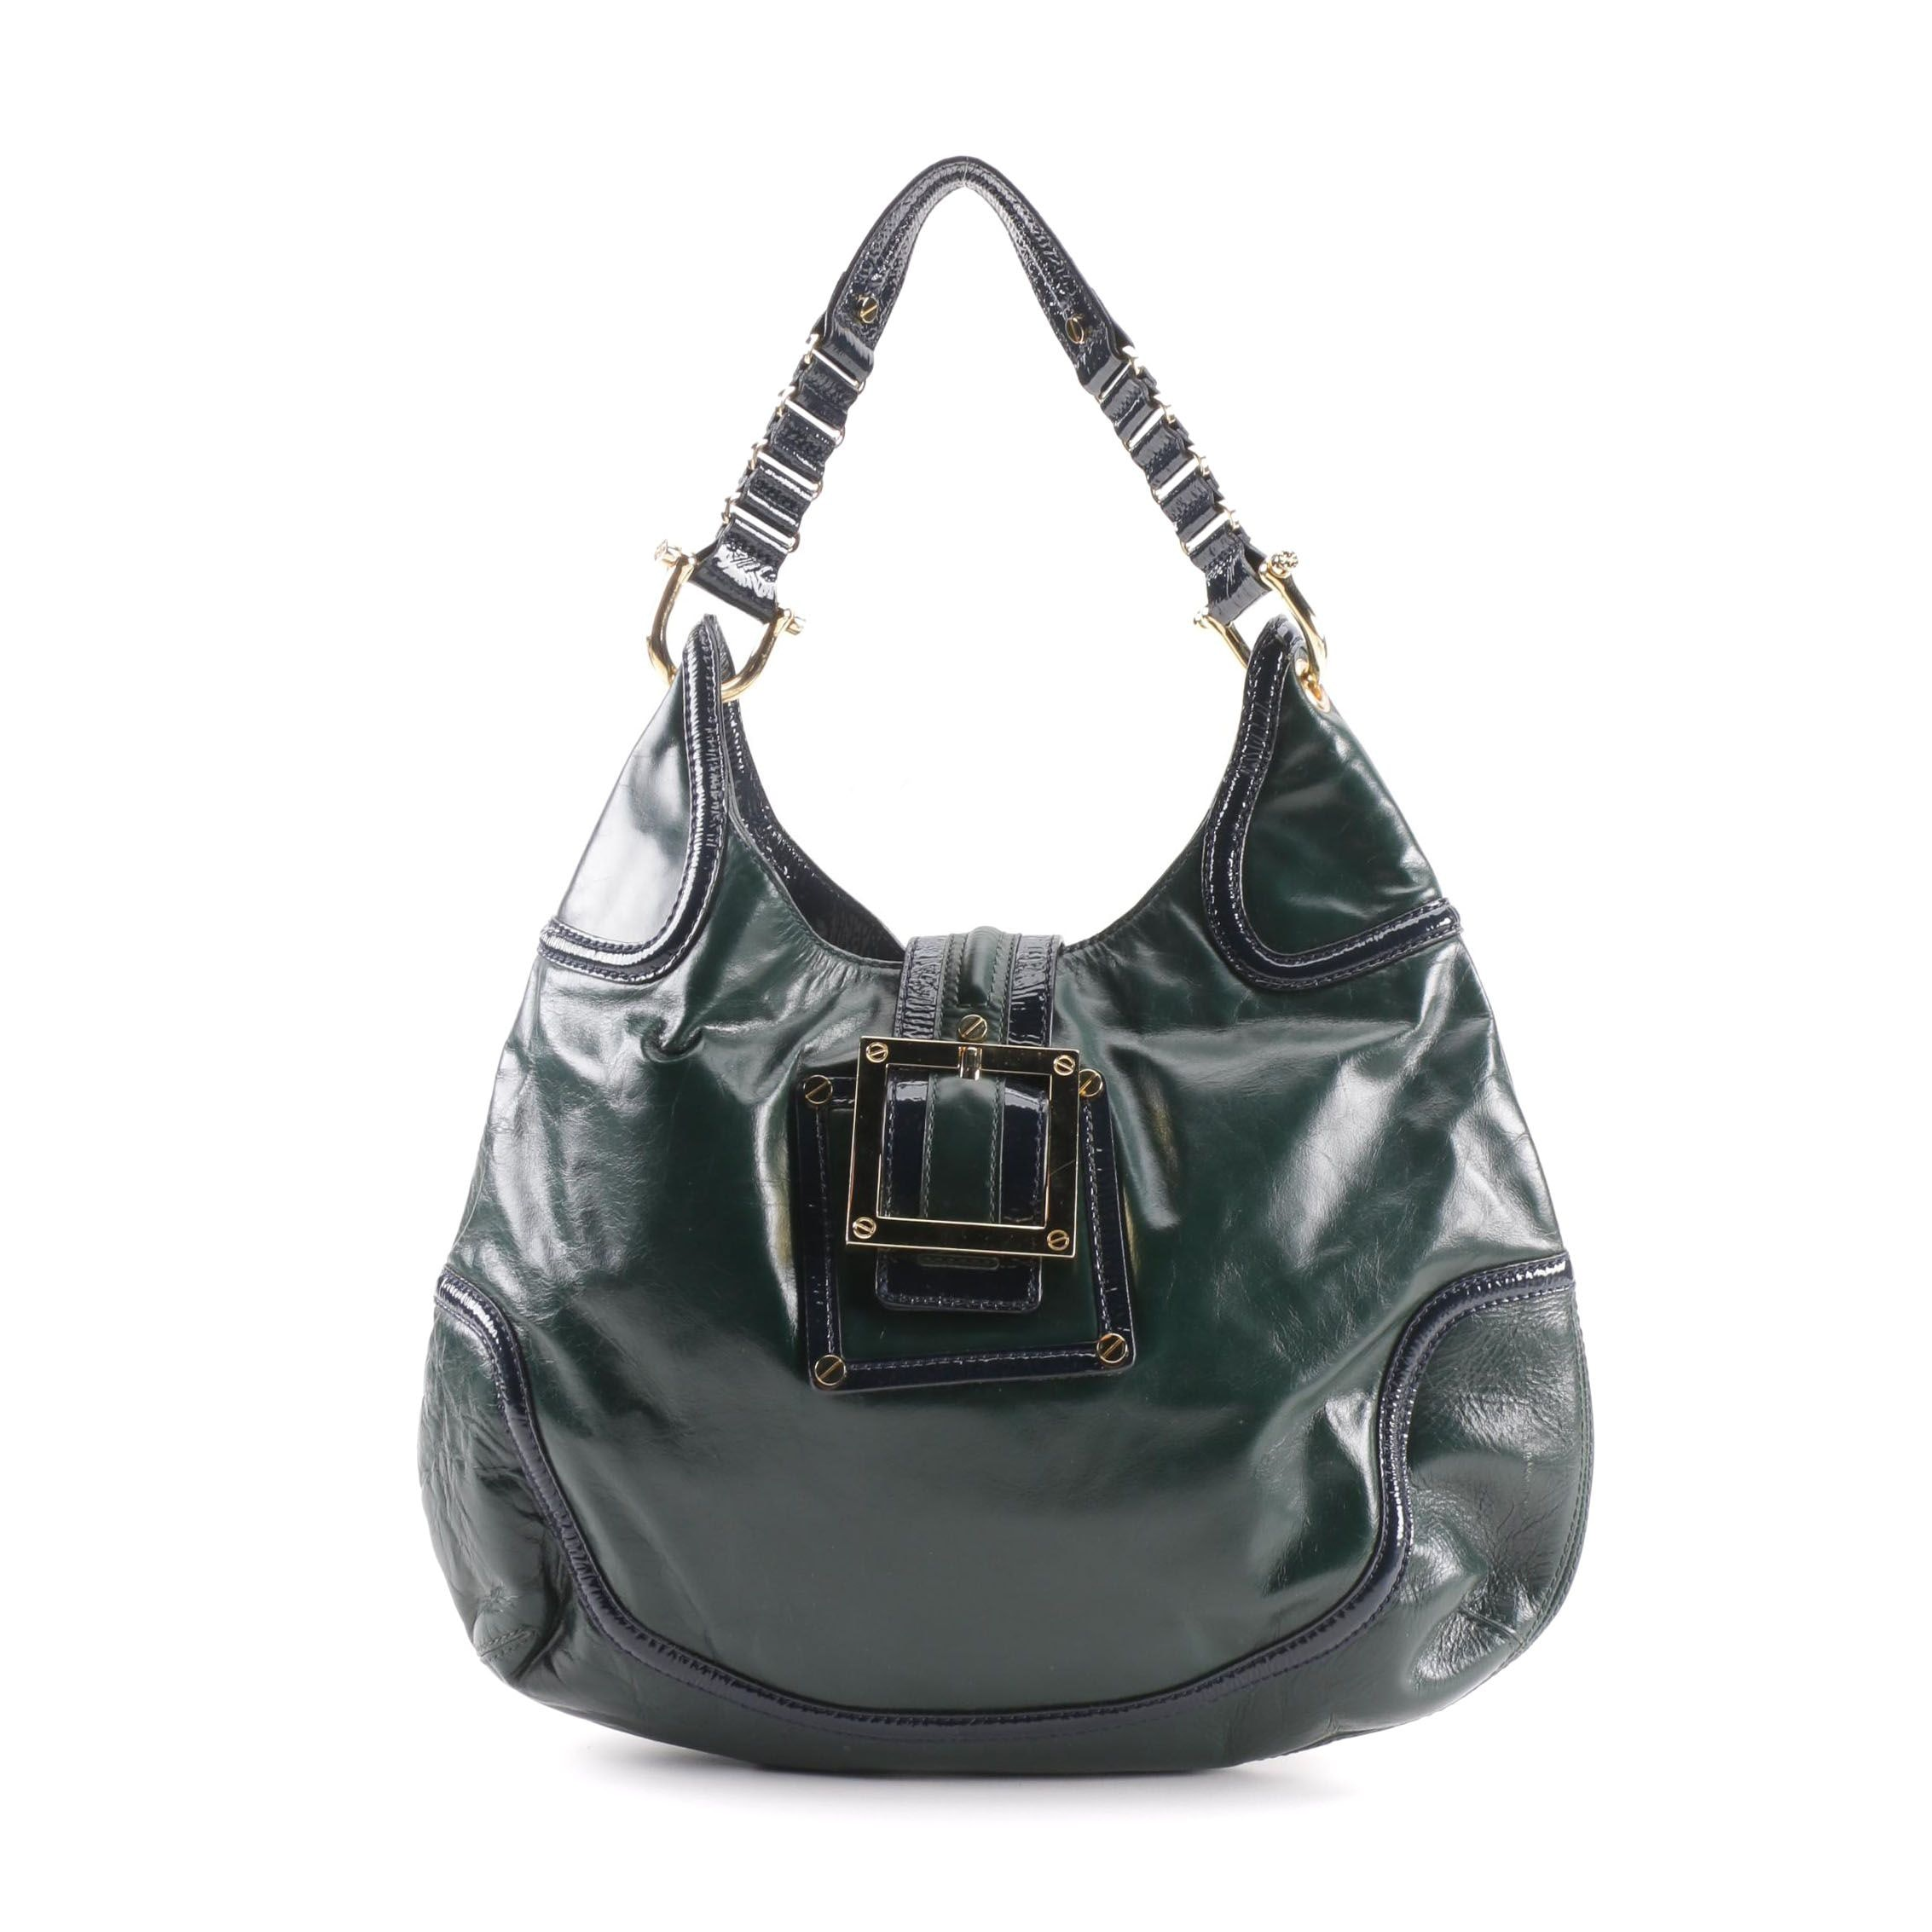 Tory Burch Forest Green and Navy Blue Leather Hobo Bag